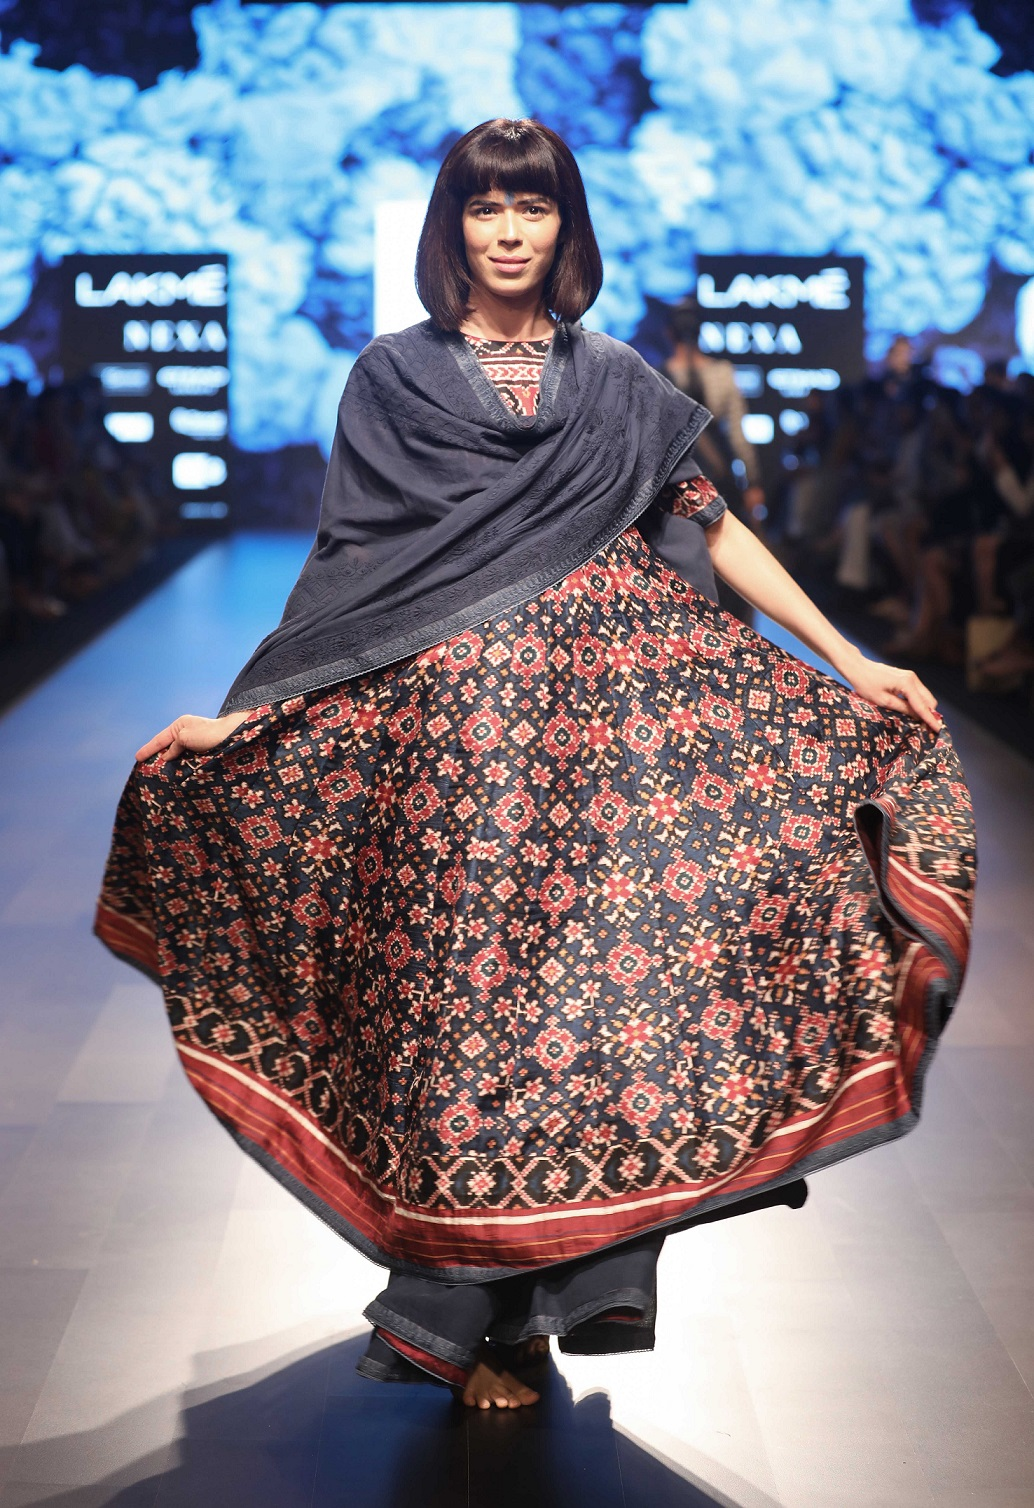 The Neel collection by Gaurang Shah at Lakme Fashion Week Summer Resort 2018